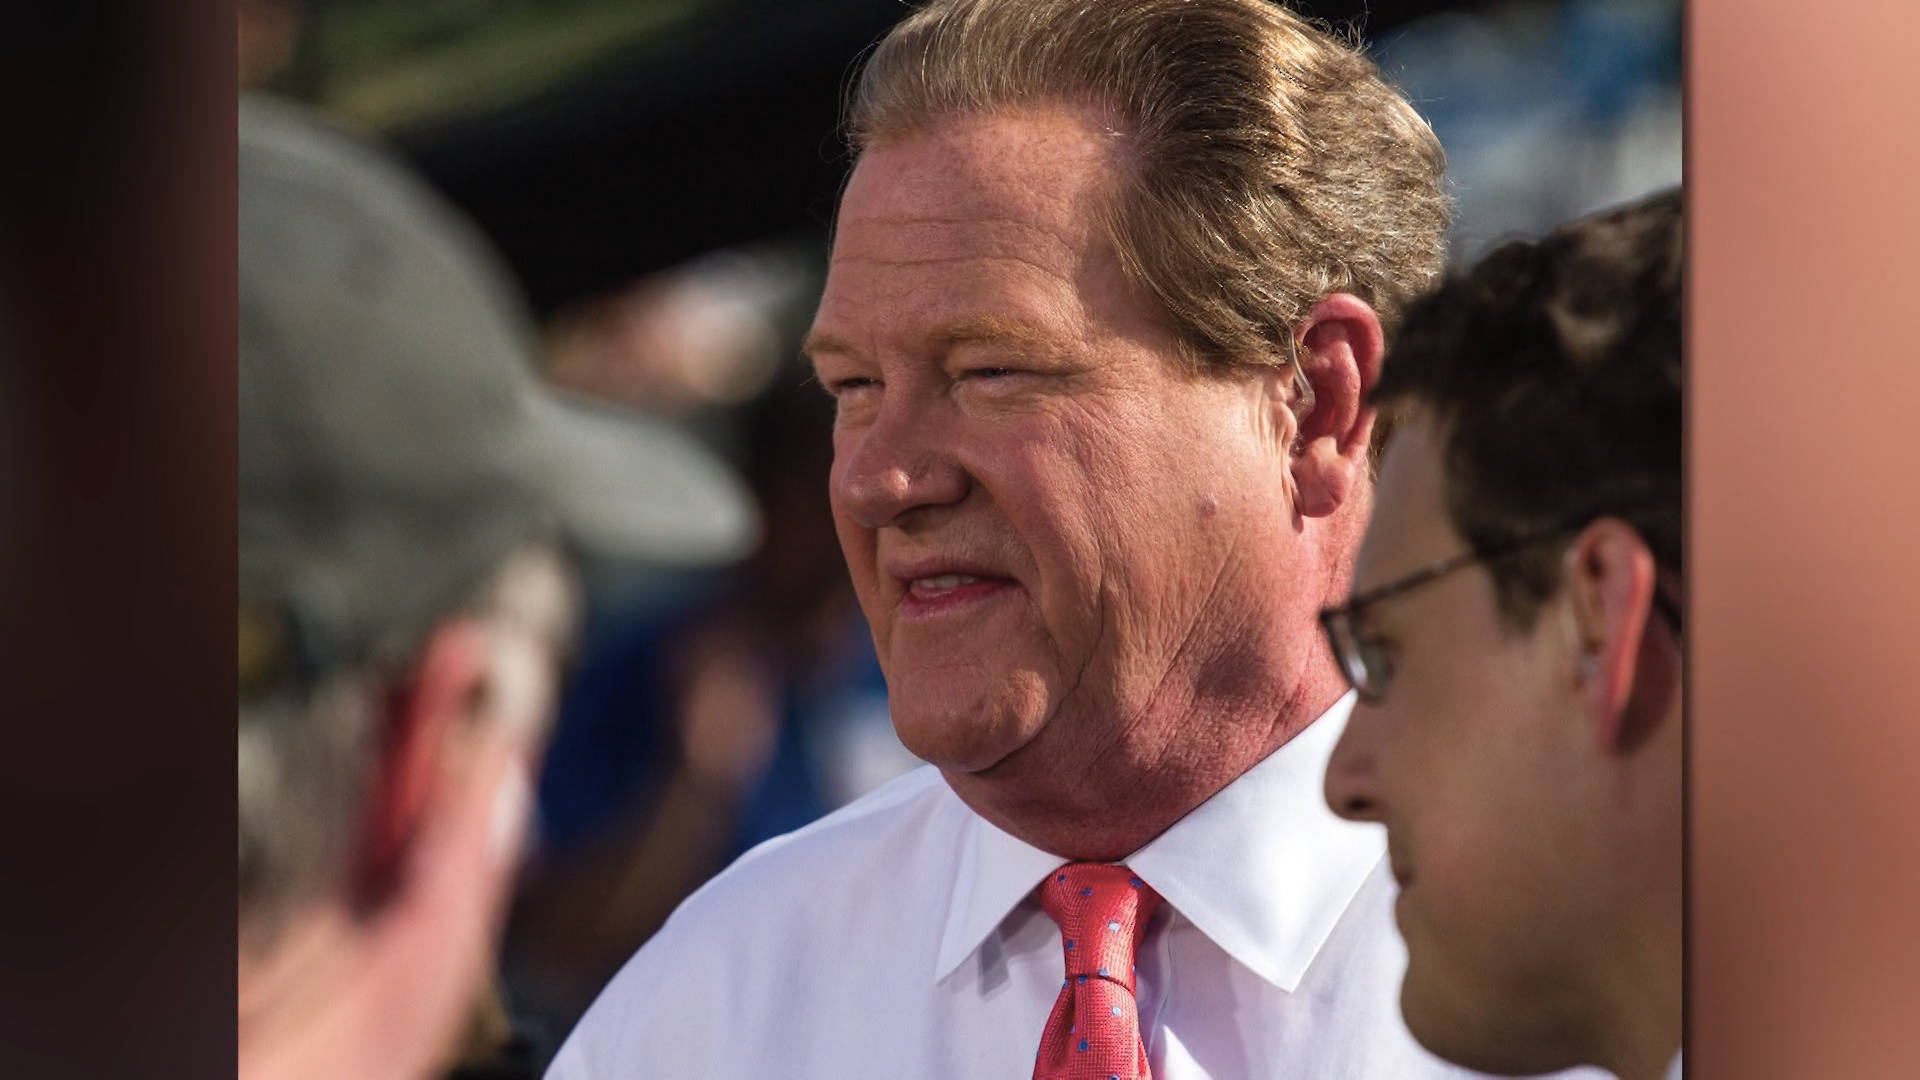 Ed Schultz, Longtime Liberal TV News Host, Dies at 64